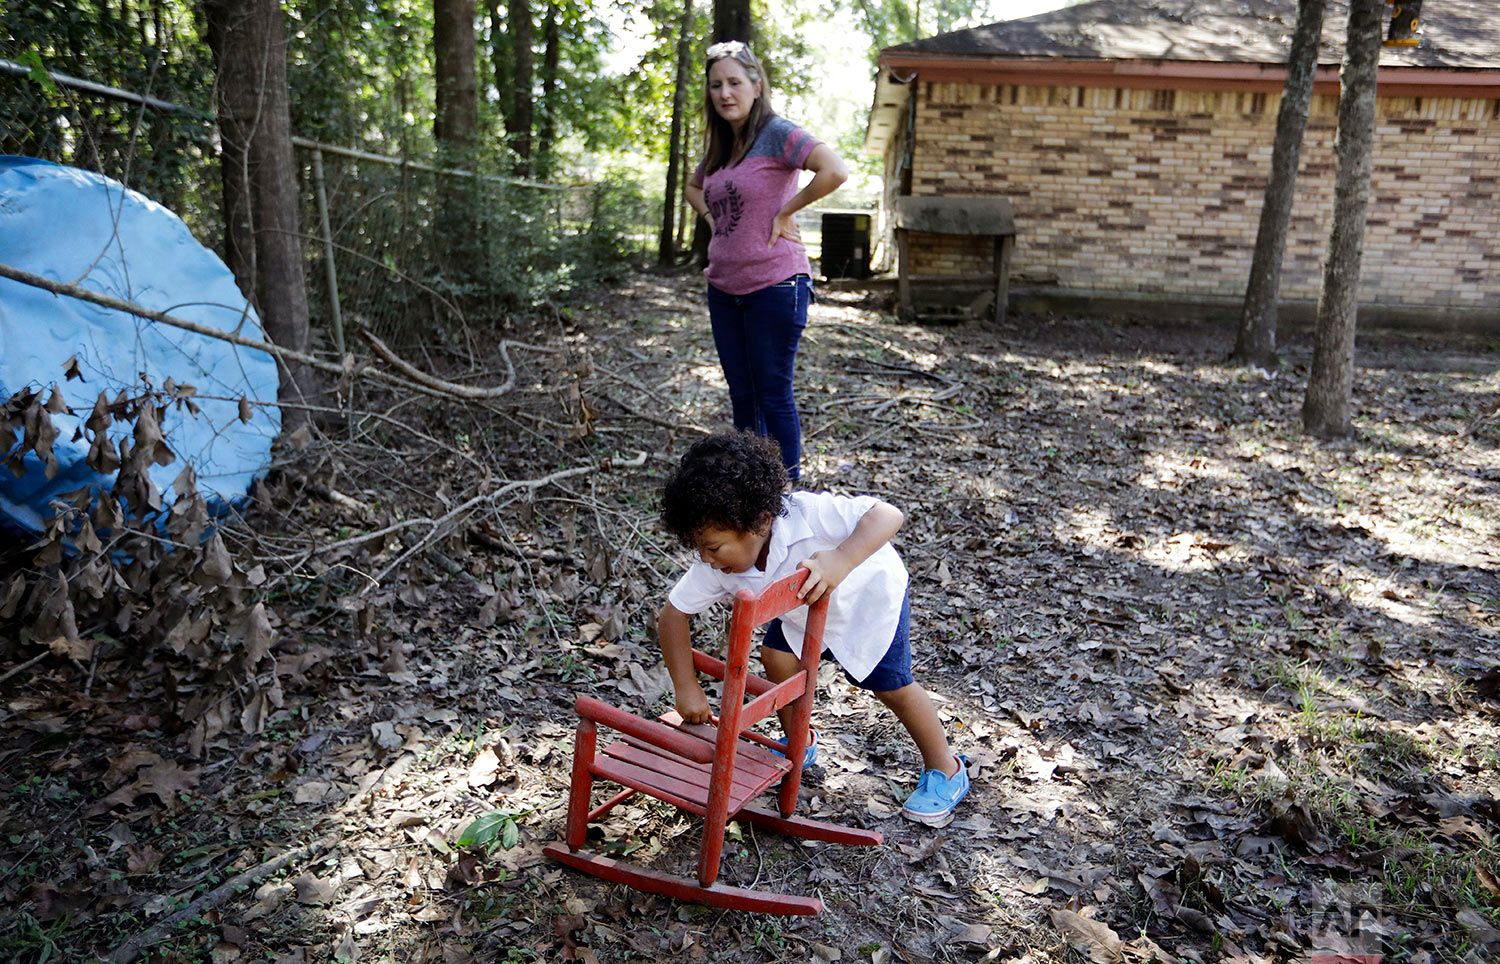 Angela Lopez, watches as her grandson, Carter Gale, 2, cleans dirt off his chair in Beaumont, Texas, Tuesday, Sept. 26, 2017. He found it in the backyard, carried by water from inside their home during Hurricane Harvey flooding. Most of her family, including her husband, are conservatives, and have followed Trump's lead and dismiss the threat of climate change. Lopez worries this will keep happening until the nation is able to have a frank conversation about it. (AP Photo/David Goldman)